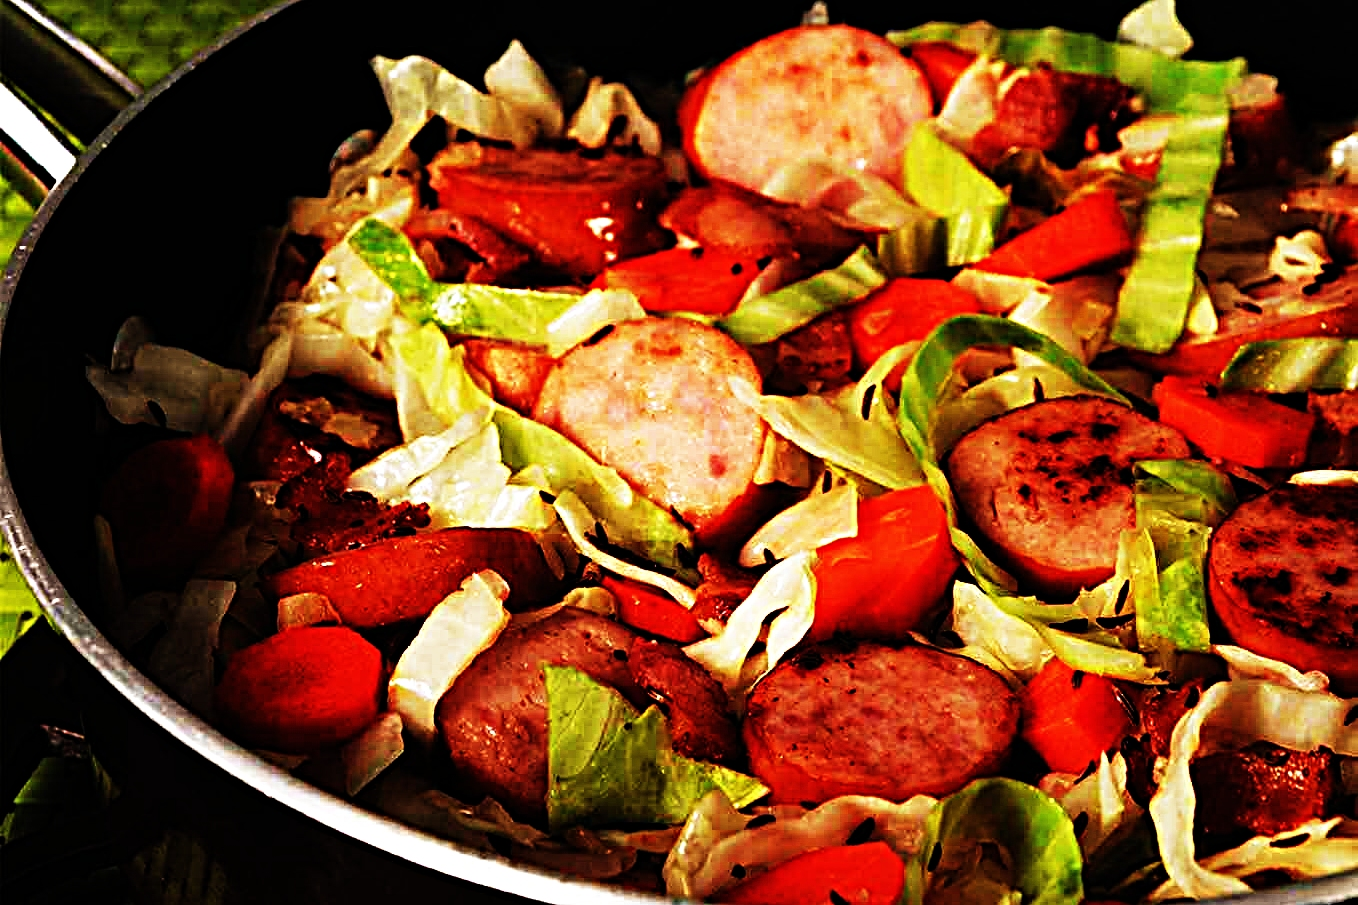 Stupid-Easy Recipe for Cabbage And Sauerkraut With Smoked Sausage (#1 Top-Rated)